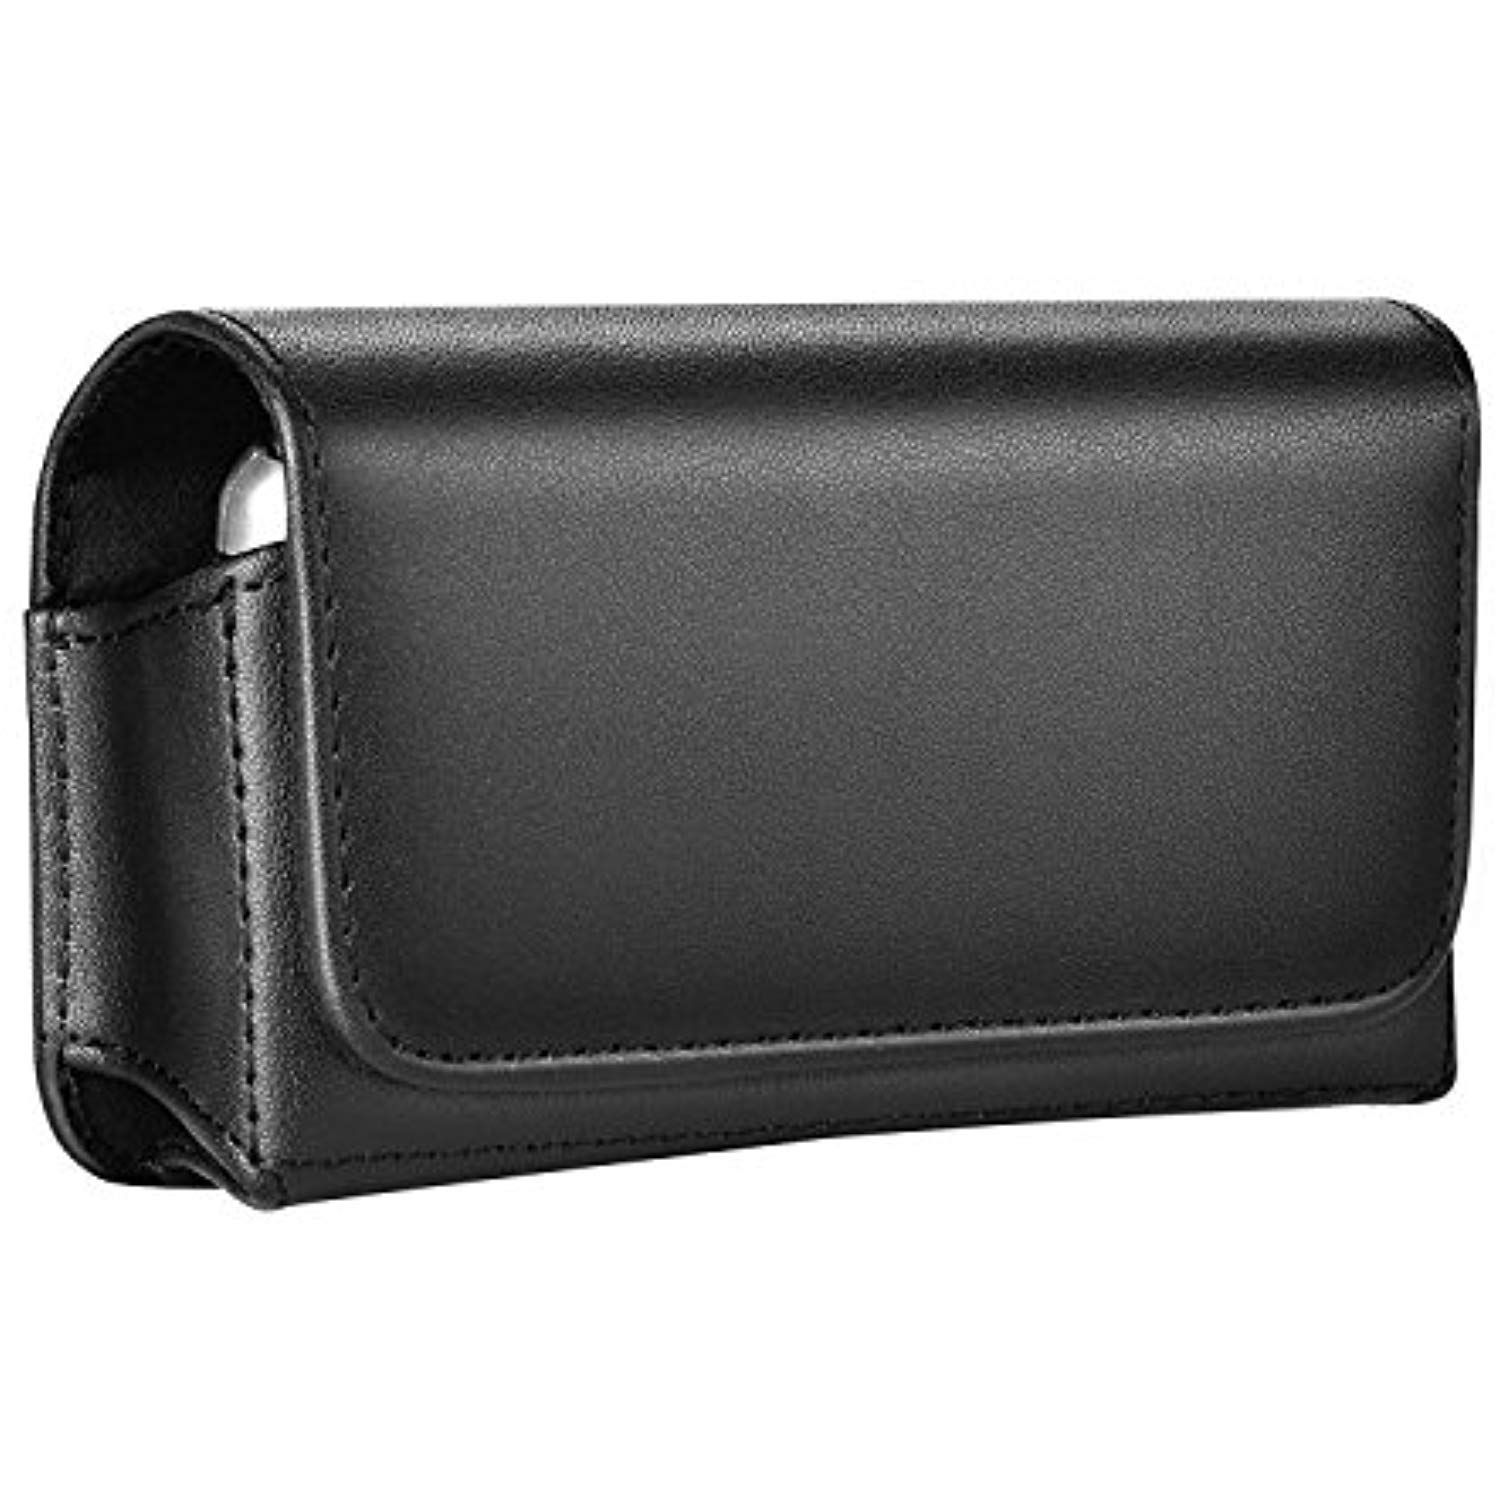 buy popular 72328 09e2e Dlames Universal Small Holster case with Belt Loop and Belt Clip for ...